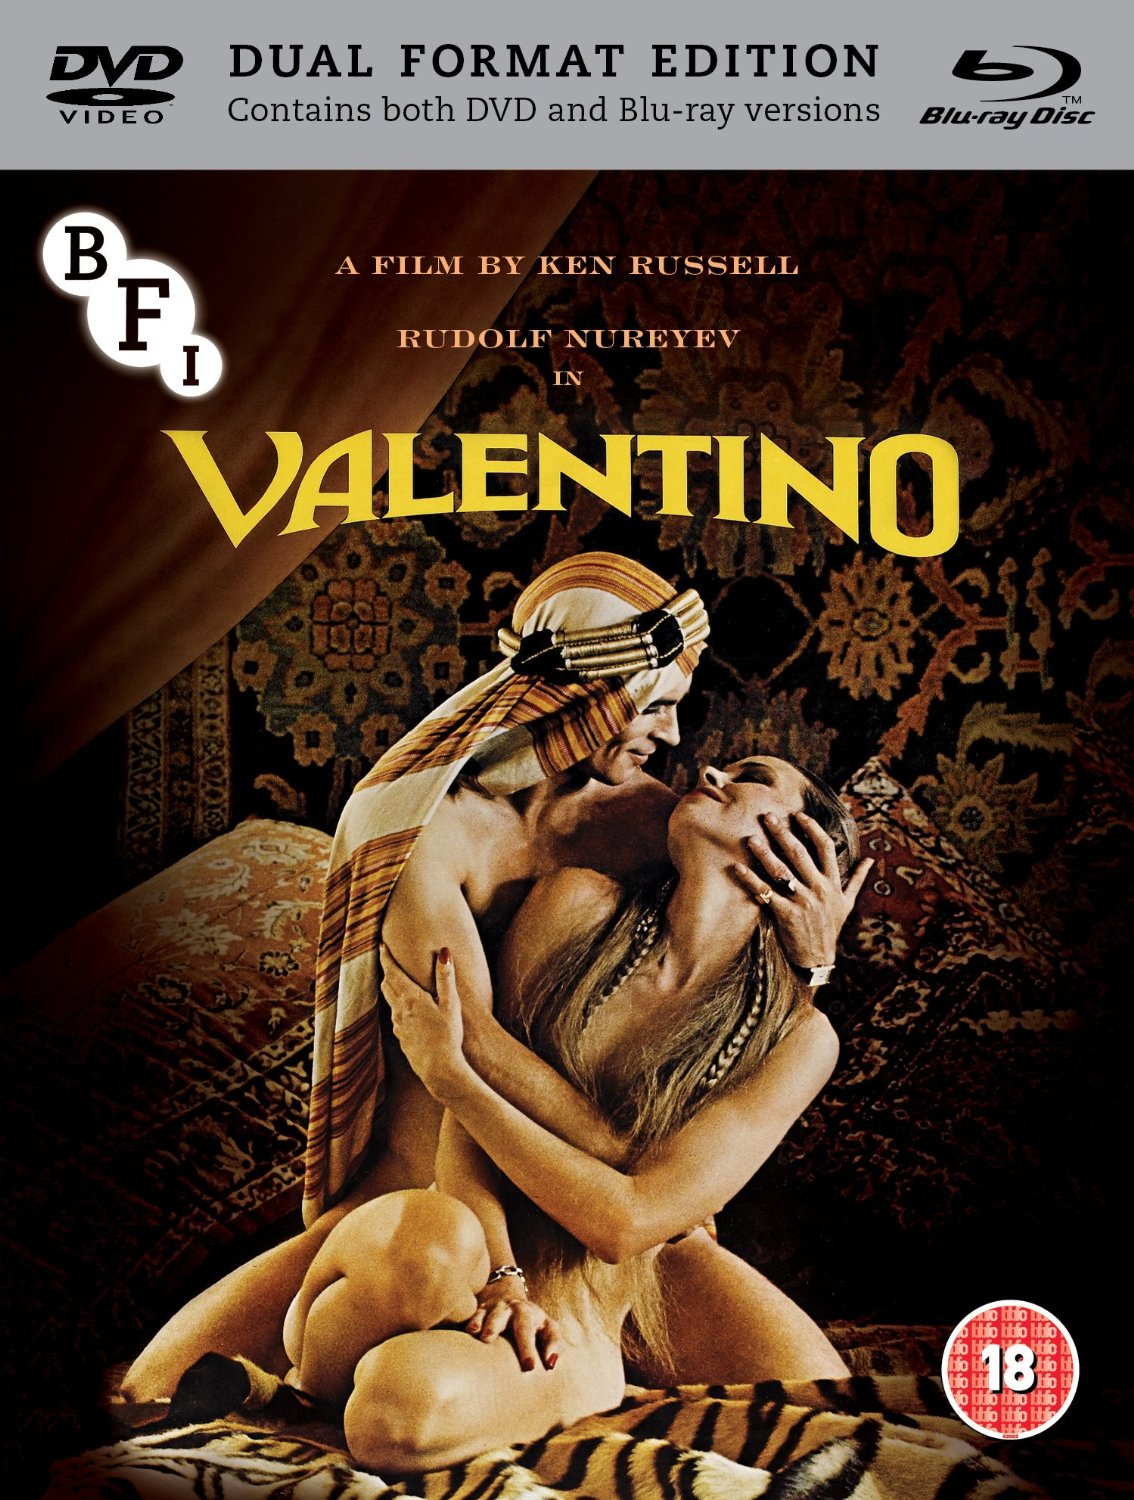 Buy Valentino (Dual Format Edition)